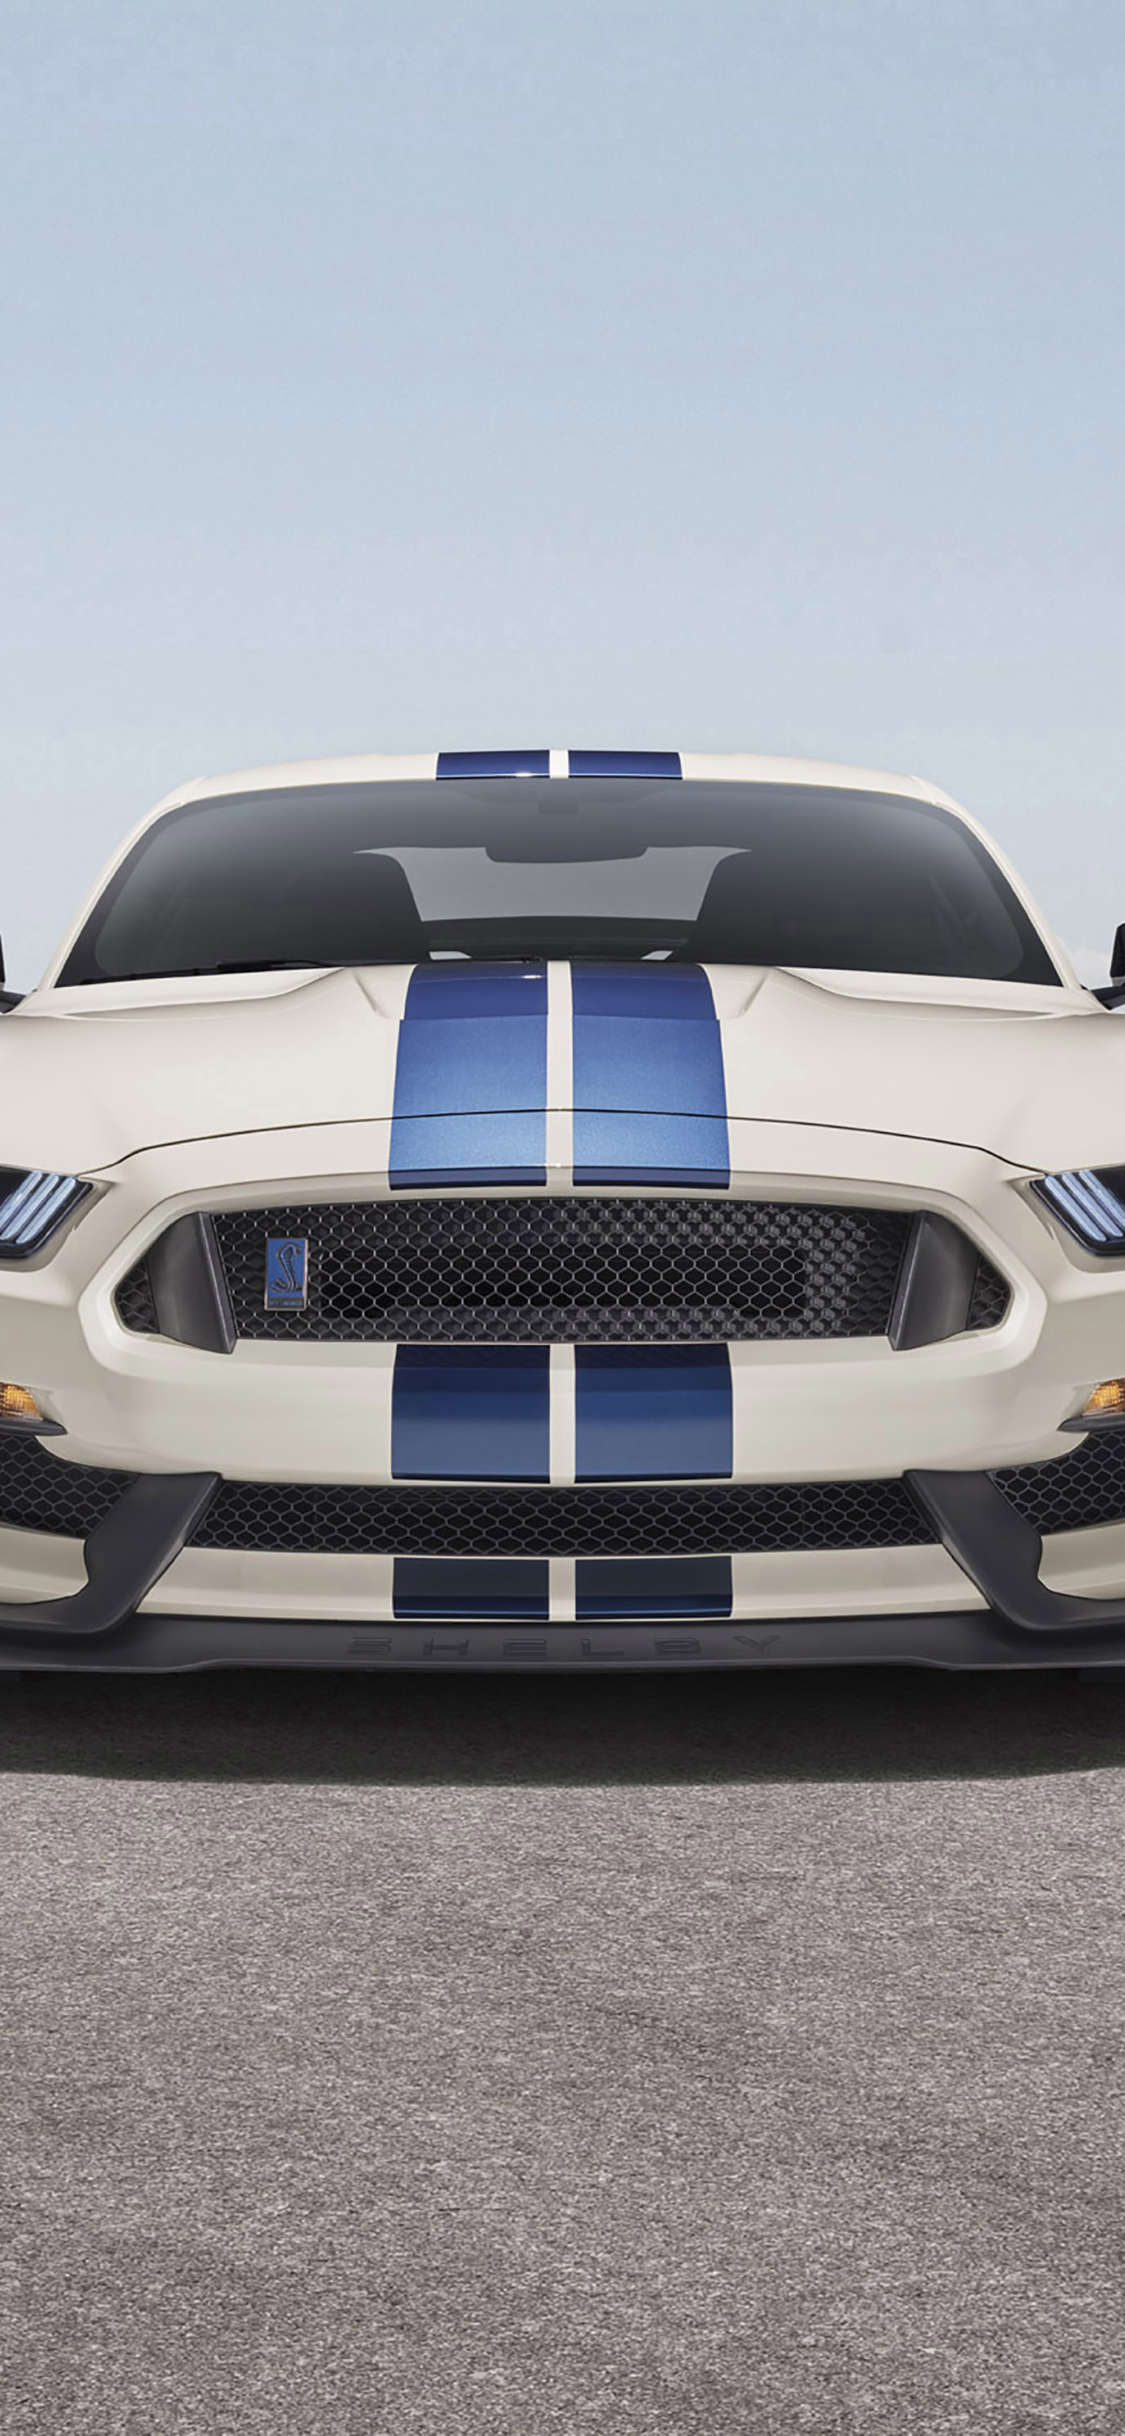 1125x2436 Ford Mustang Shelby Gt350 Iphone Xs Iphone 10 Iphone X Wallpaper Hd Cars 4k Wallpapers Images Photos And Background